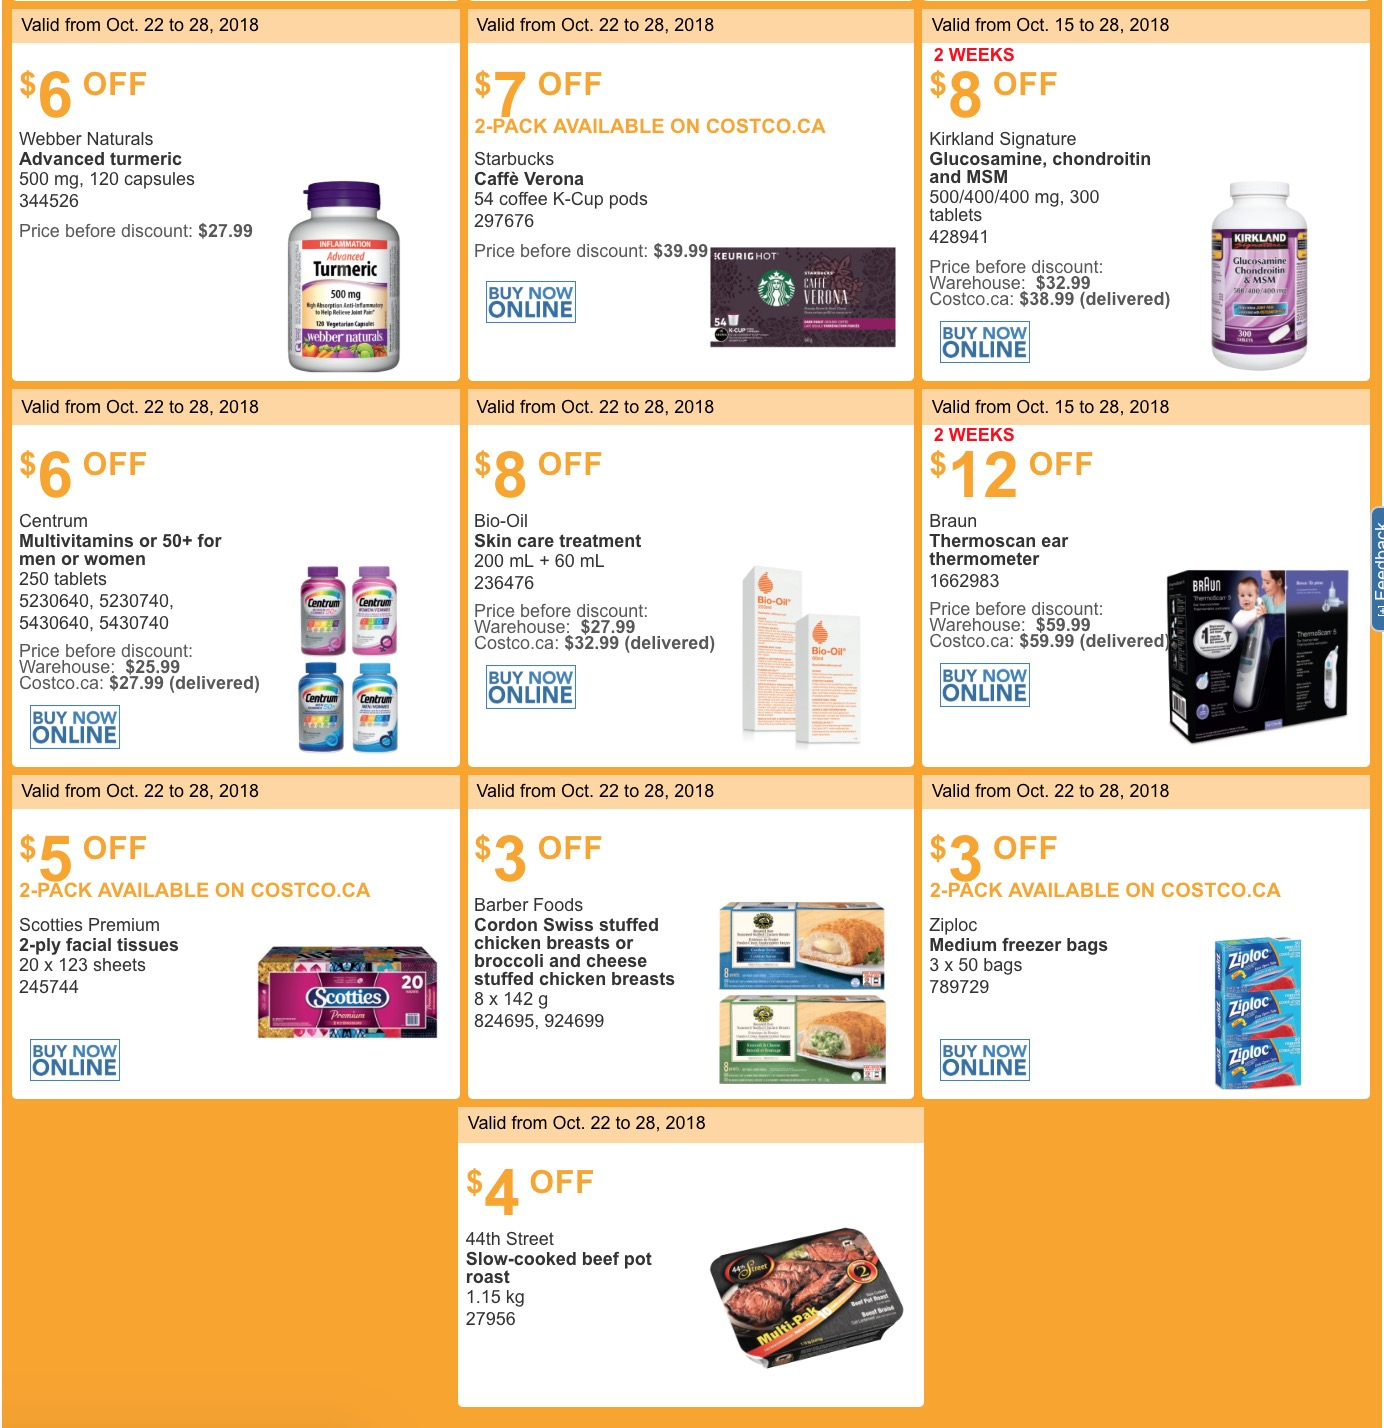 0df3c3fe06 Costco Canada has now released the new weekly instant discount handouts!  These handouts are available at all Costco Wholesale warehouses in Quebec.